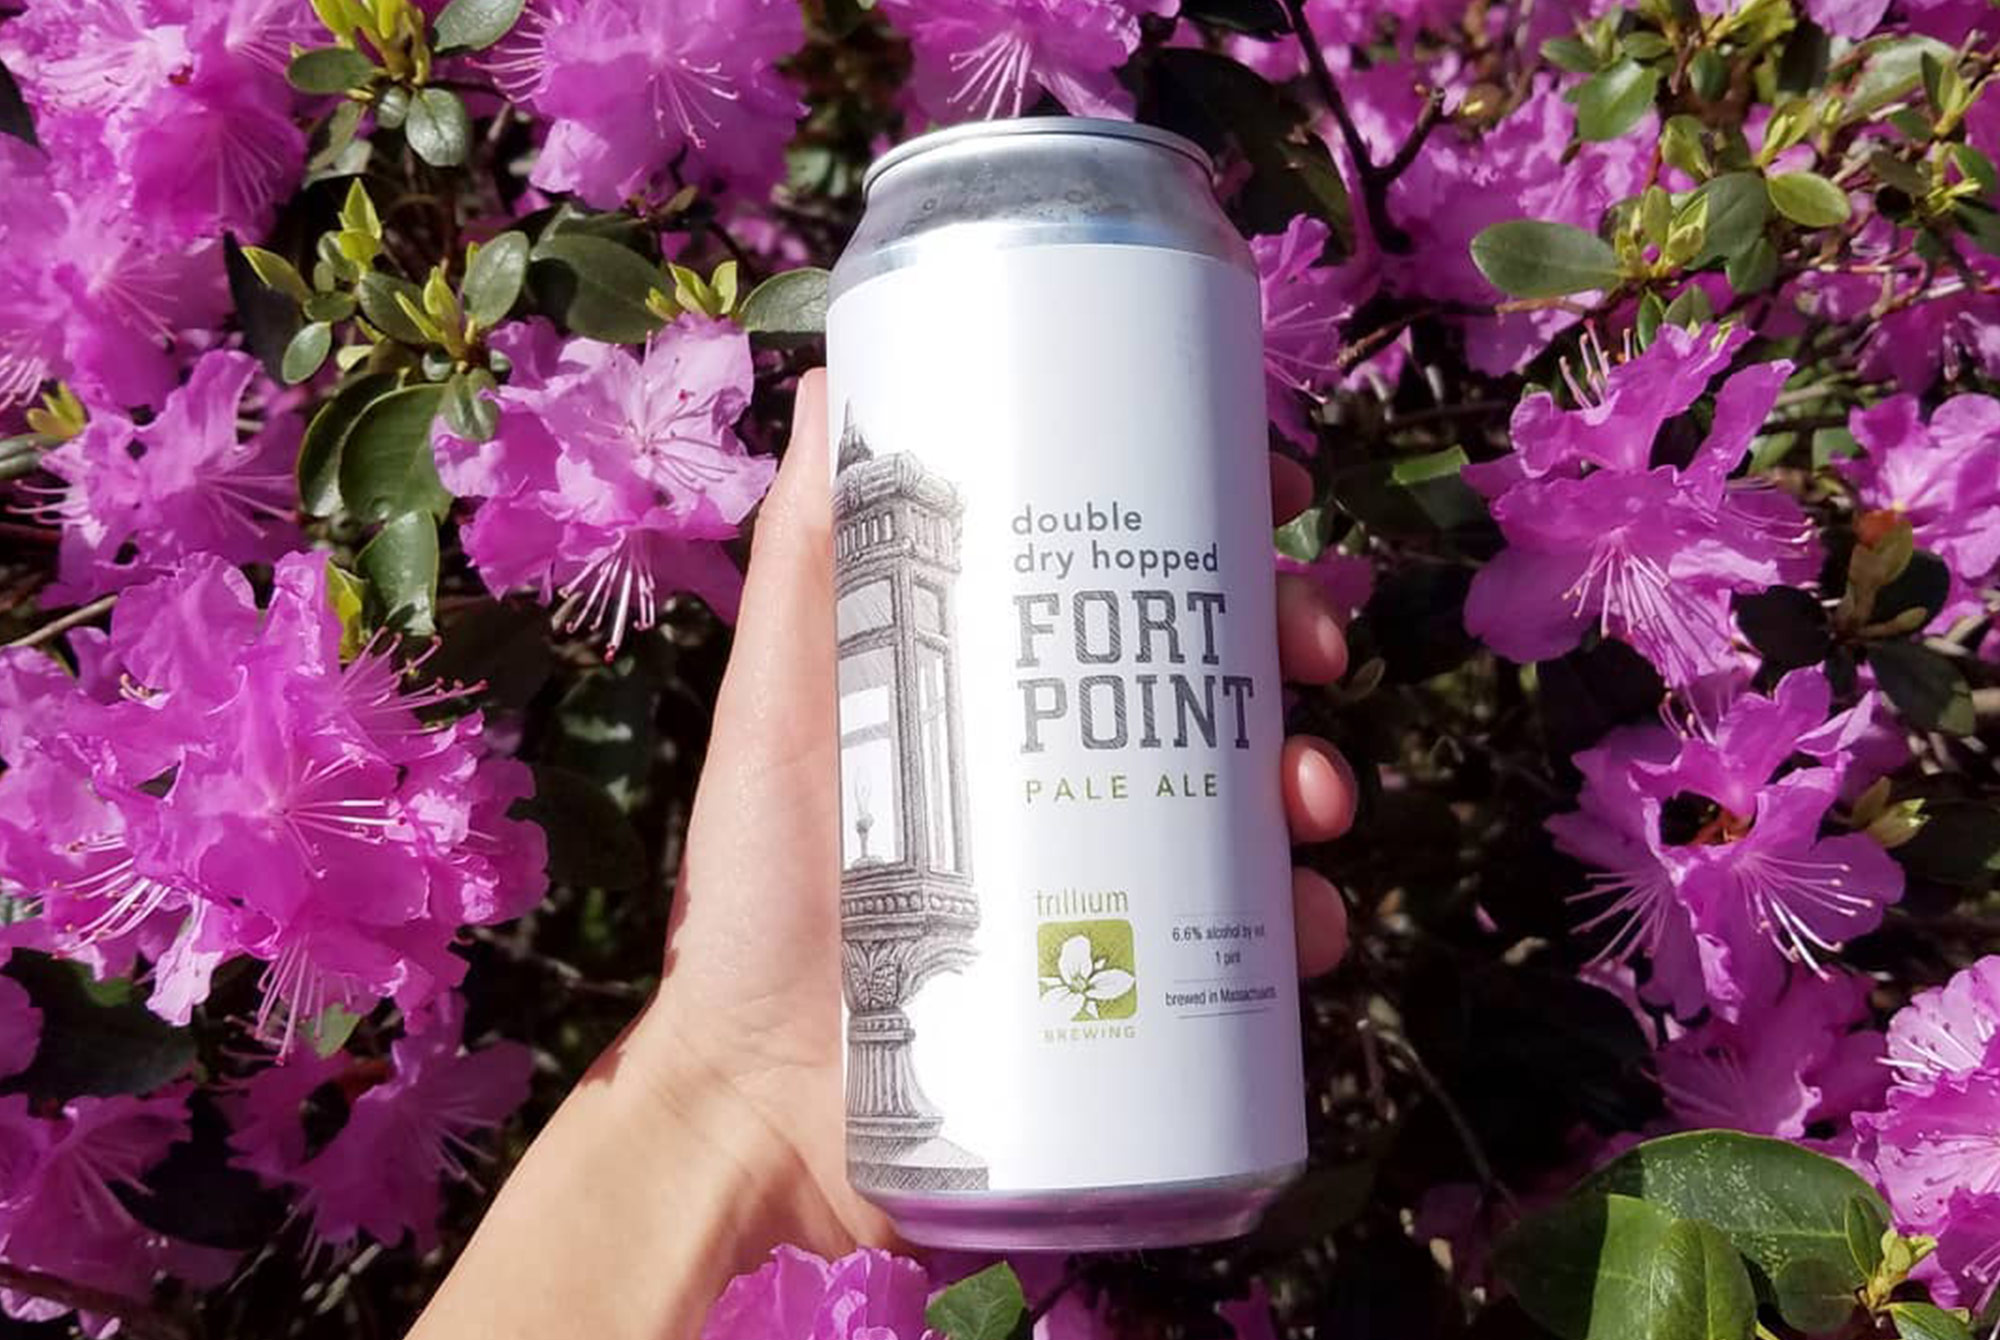 DDH Fort Point from Trillium, one of the best breweries in Boston